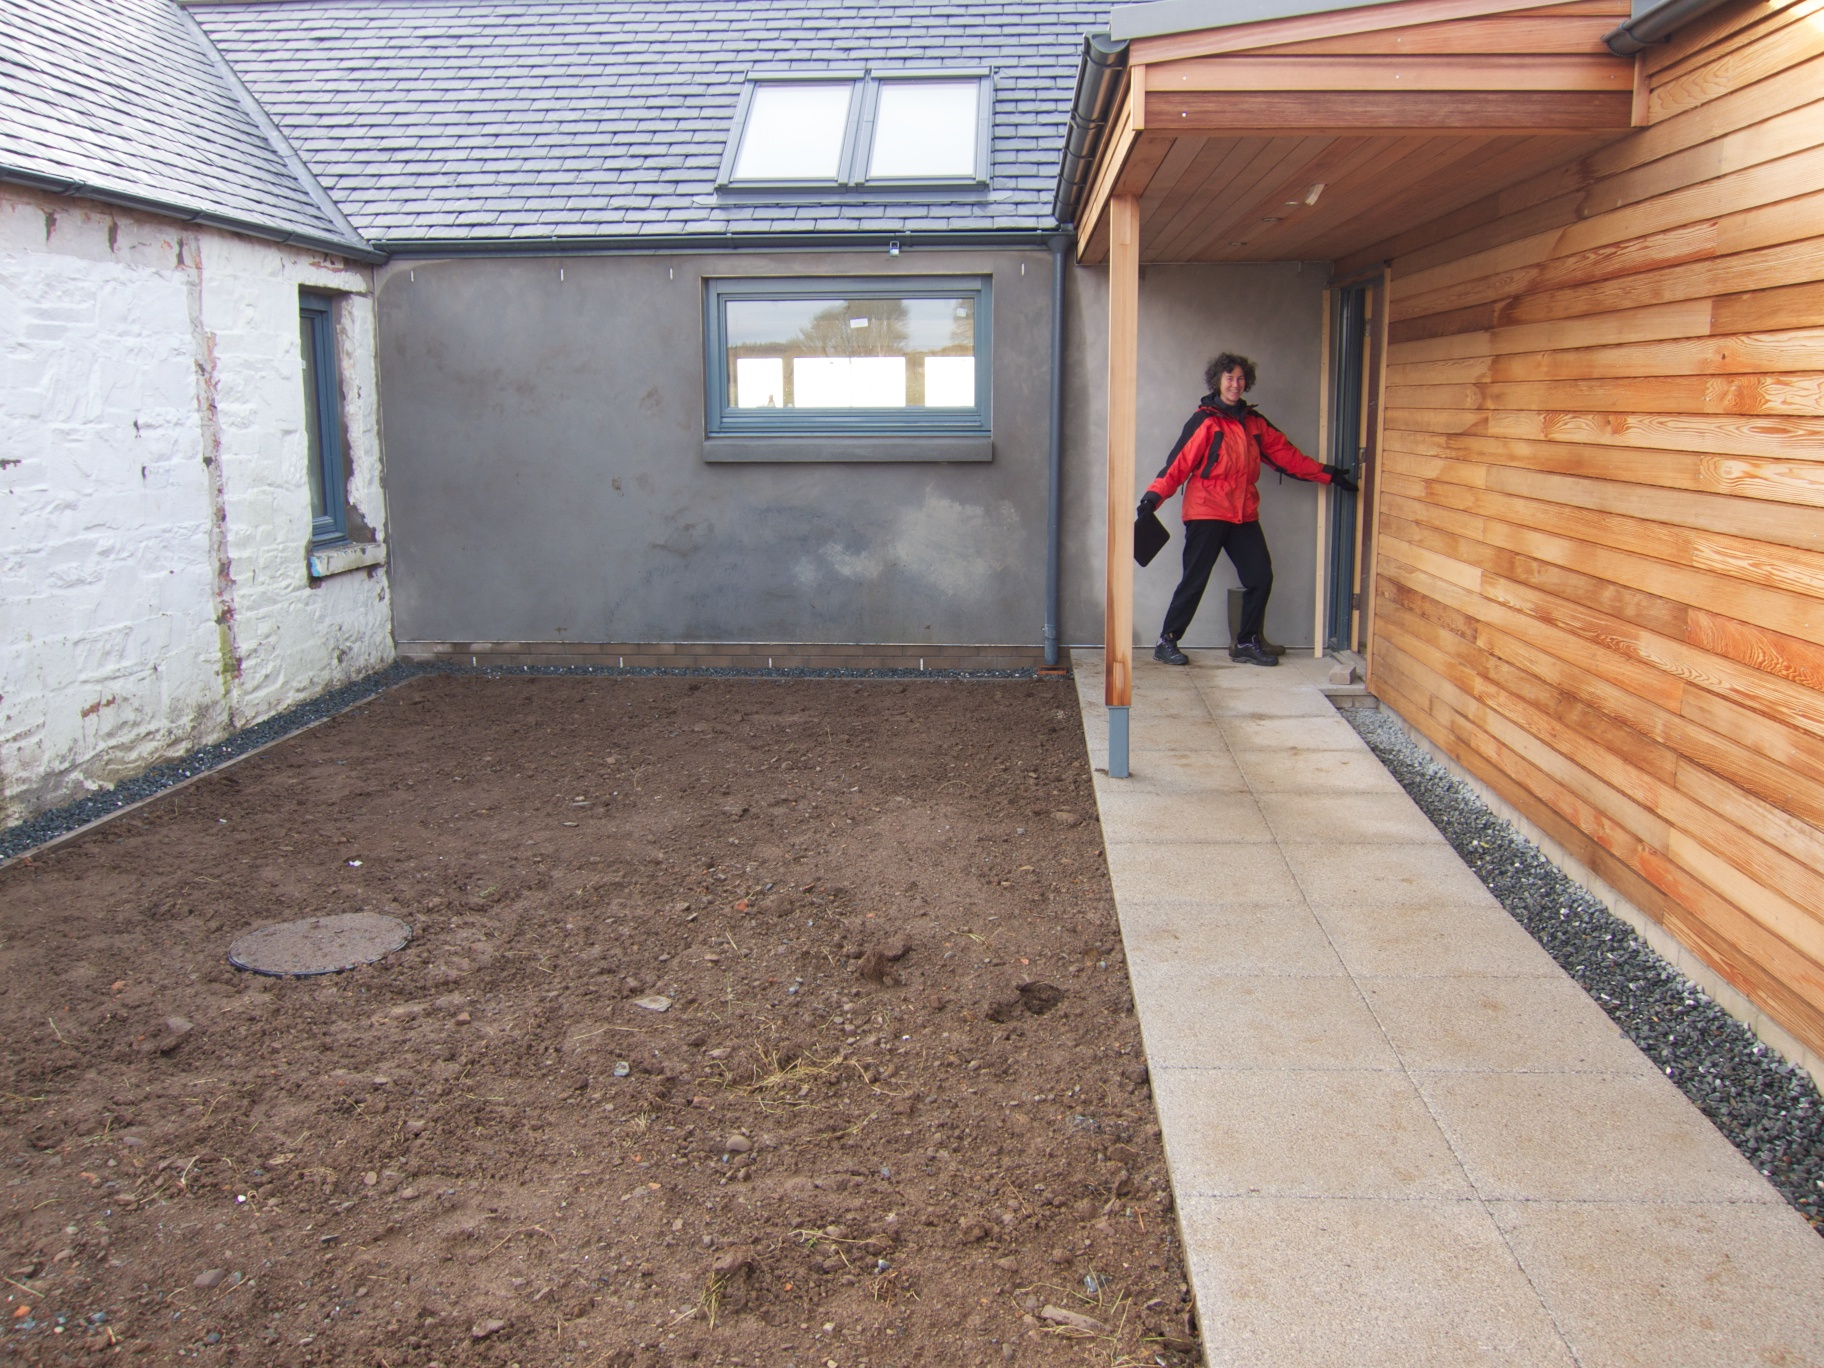 The Paving And Gravel Around The House Has Been Completed. This Is The  Small Courtyard And Path Leading To The Main House Door. We Will Be  Planting Up The ...